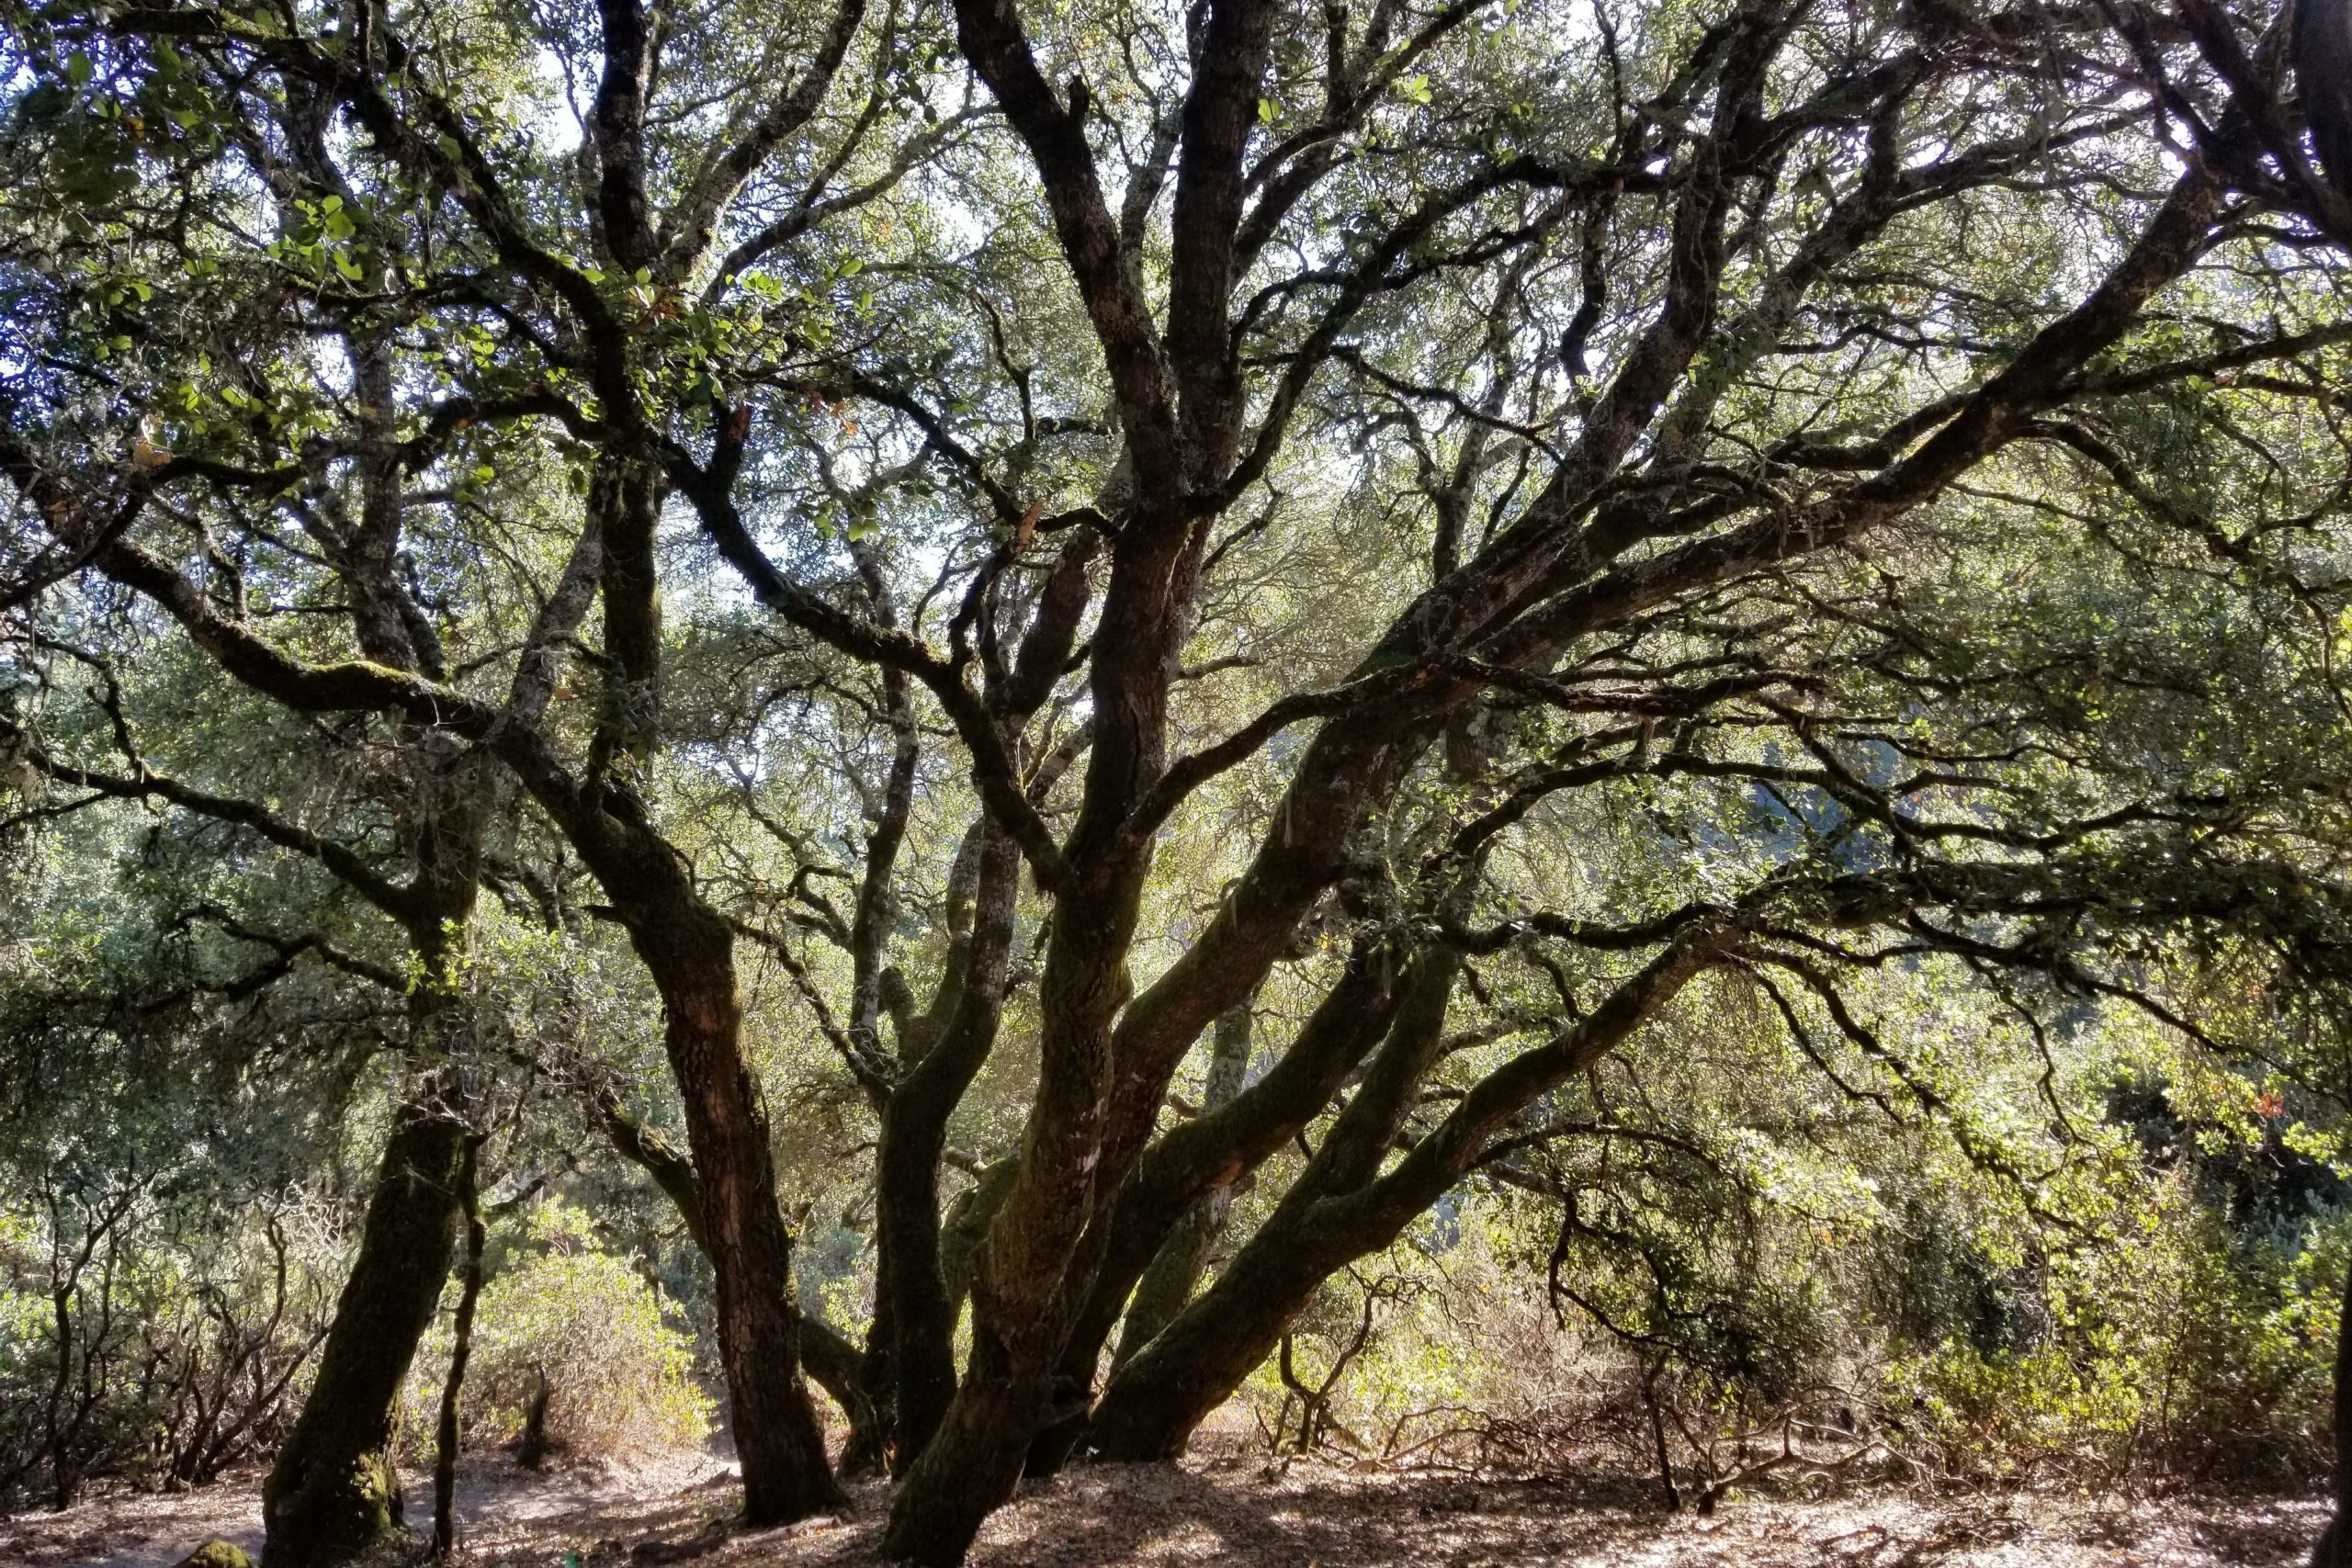 Coast live oak, Quercus agrifolia, an important source of acorns